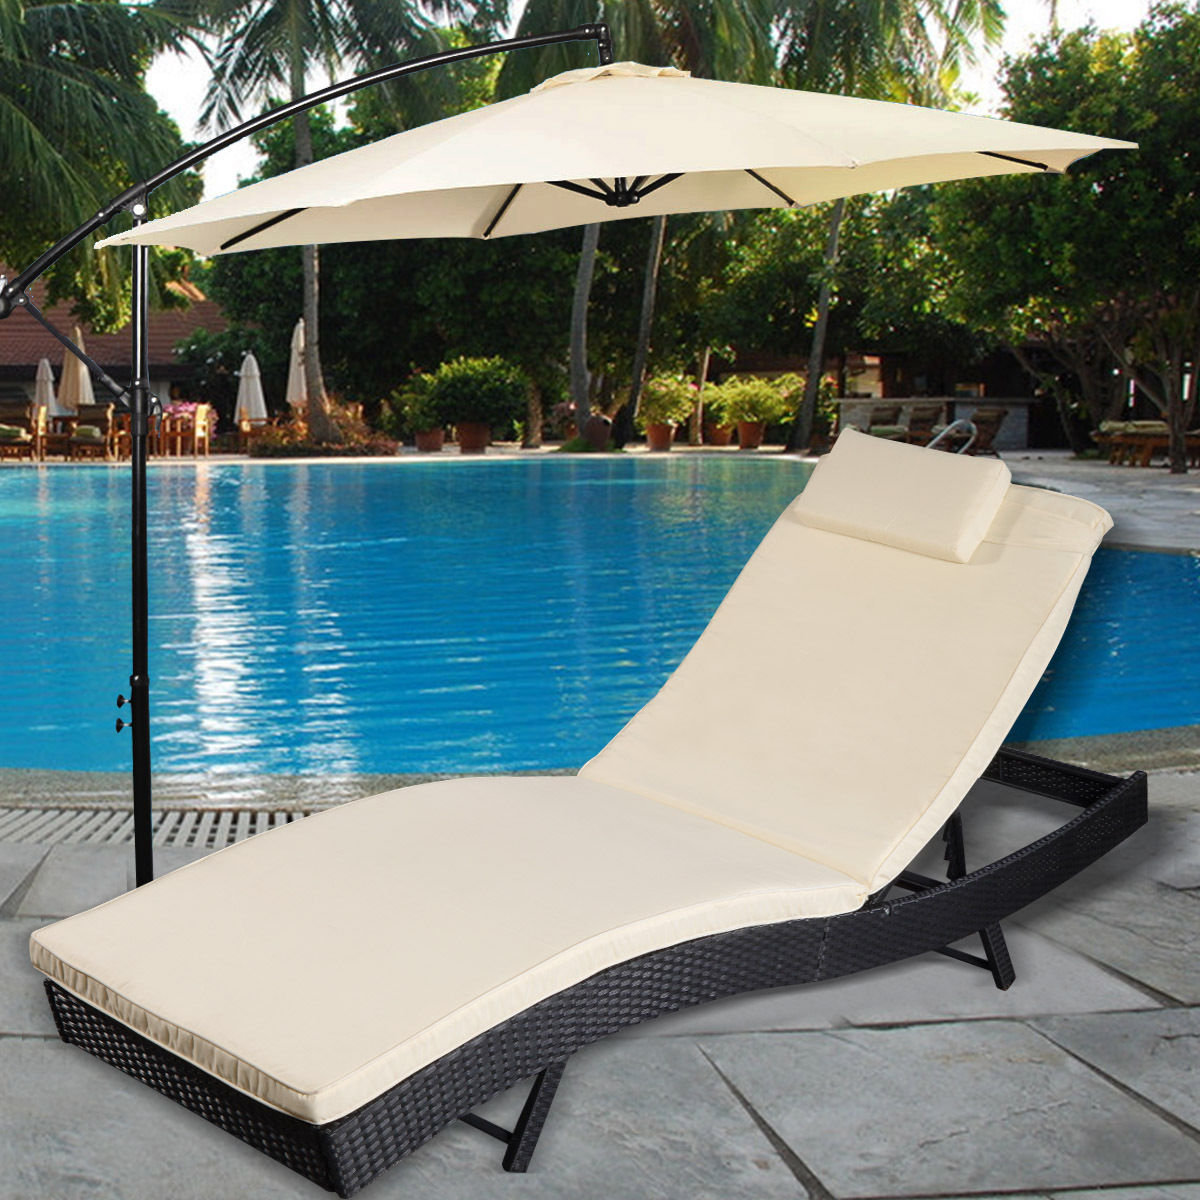 Pool Chaise Lounge Chairs Goplus Adjustable Pool Chaise Lounge Chair Outdoor Patio Furniture Pe Wicker W Cushion